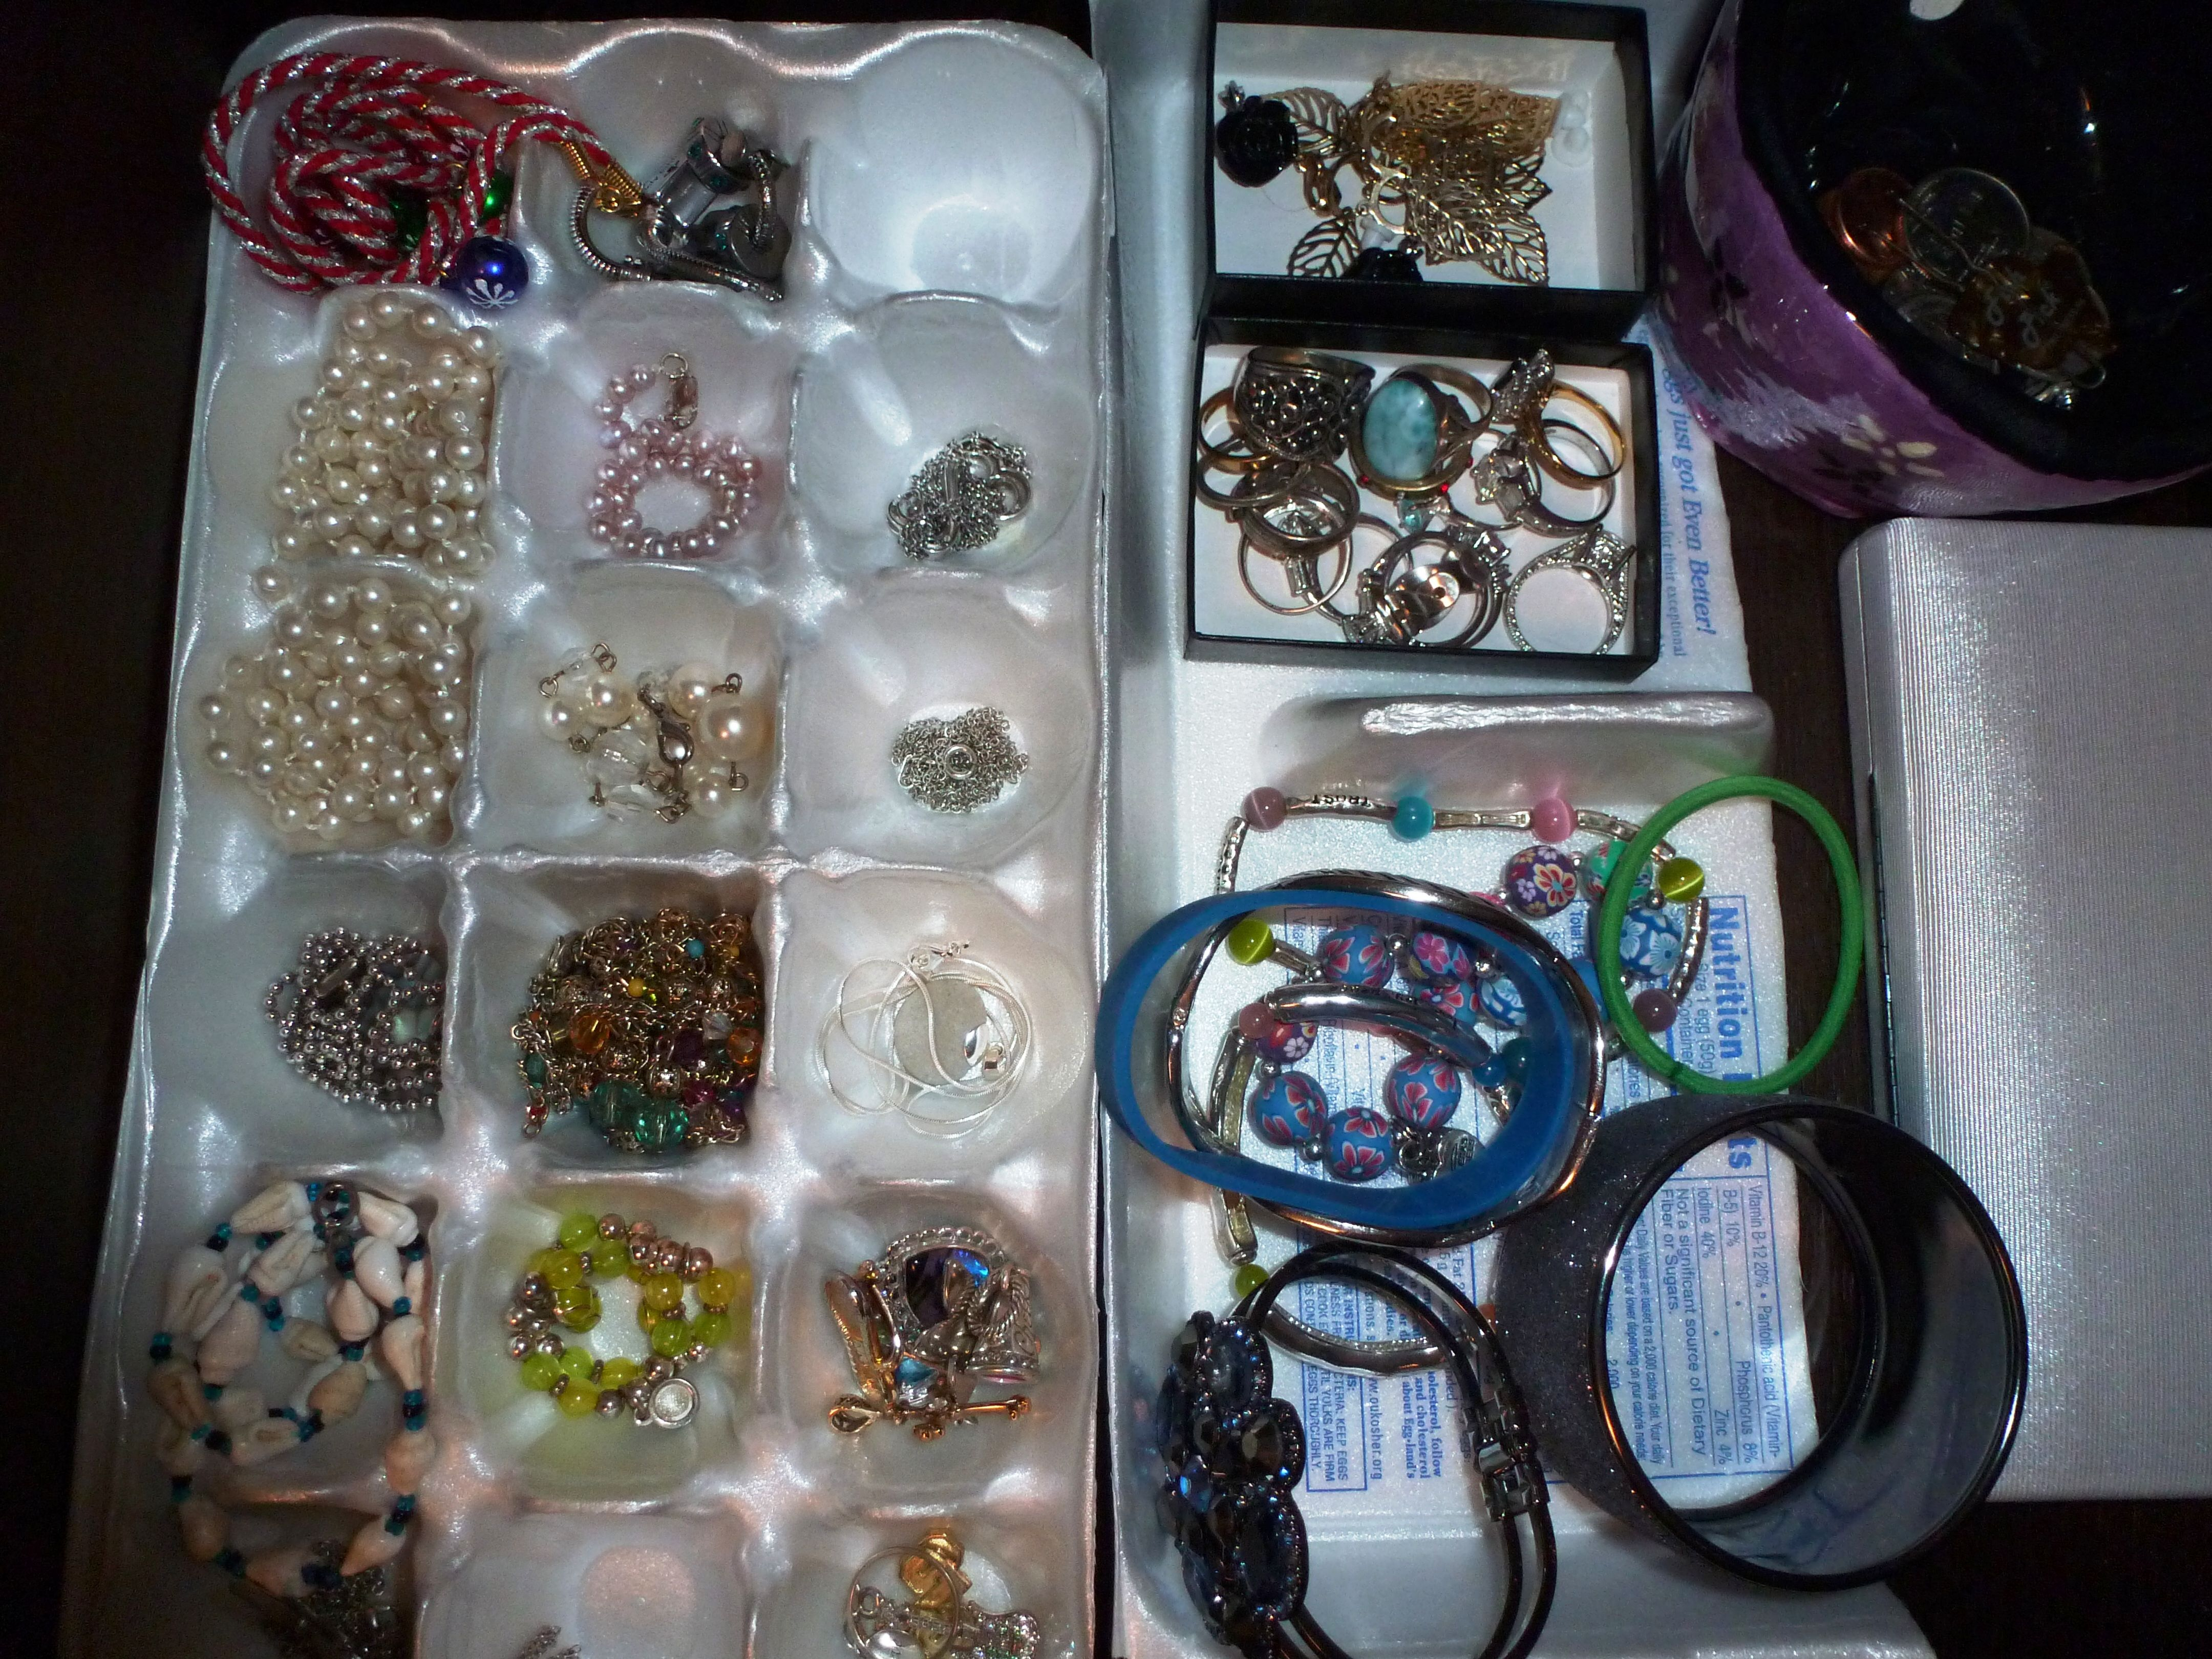 reuse egg carton to sort jewelry in drawer repurpose recycle - Reuse Repurpose